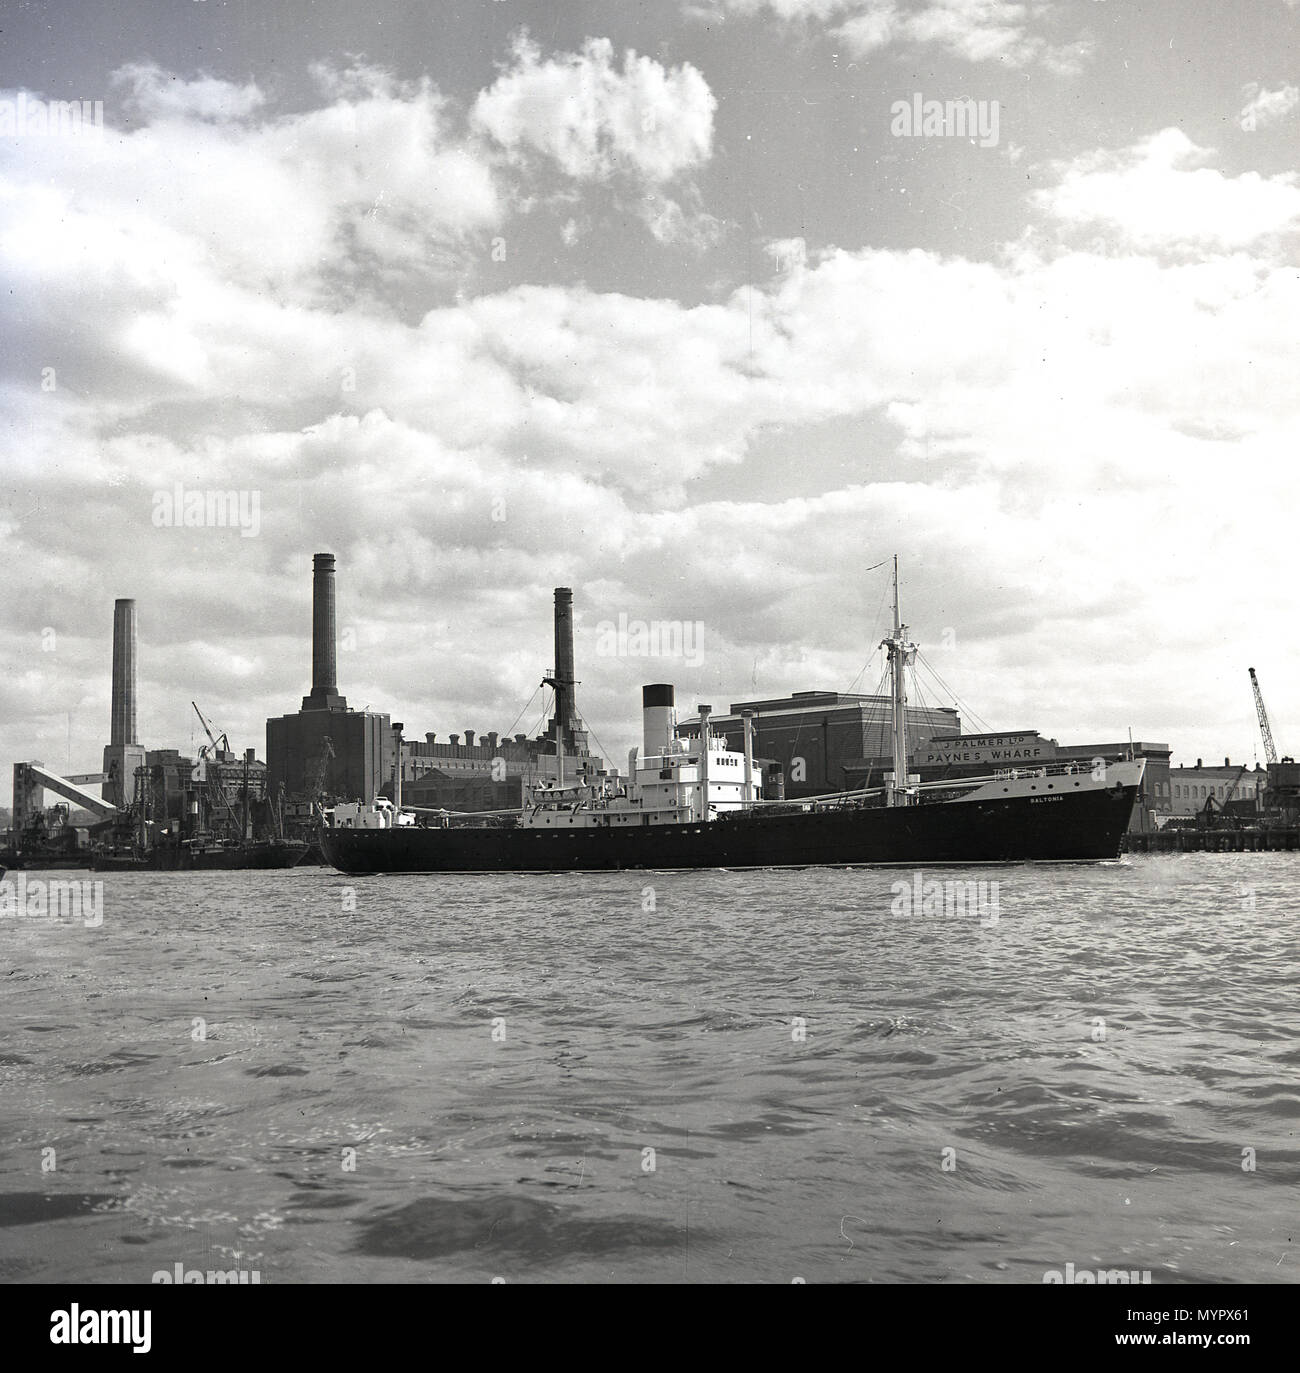 Early 1950s, view from across the river Thames to the south of the river and a working Battersea power station, which at this time, only had three chimneys, London, England, UK. The fourth chimney stack, the south east one, was erected in 1955. - Stock Image